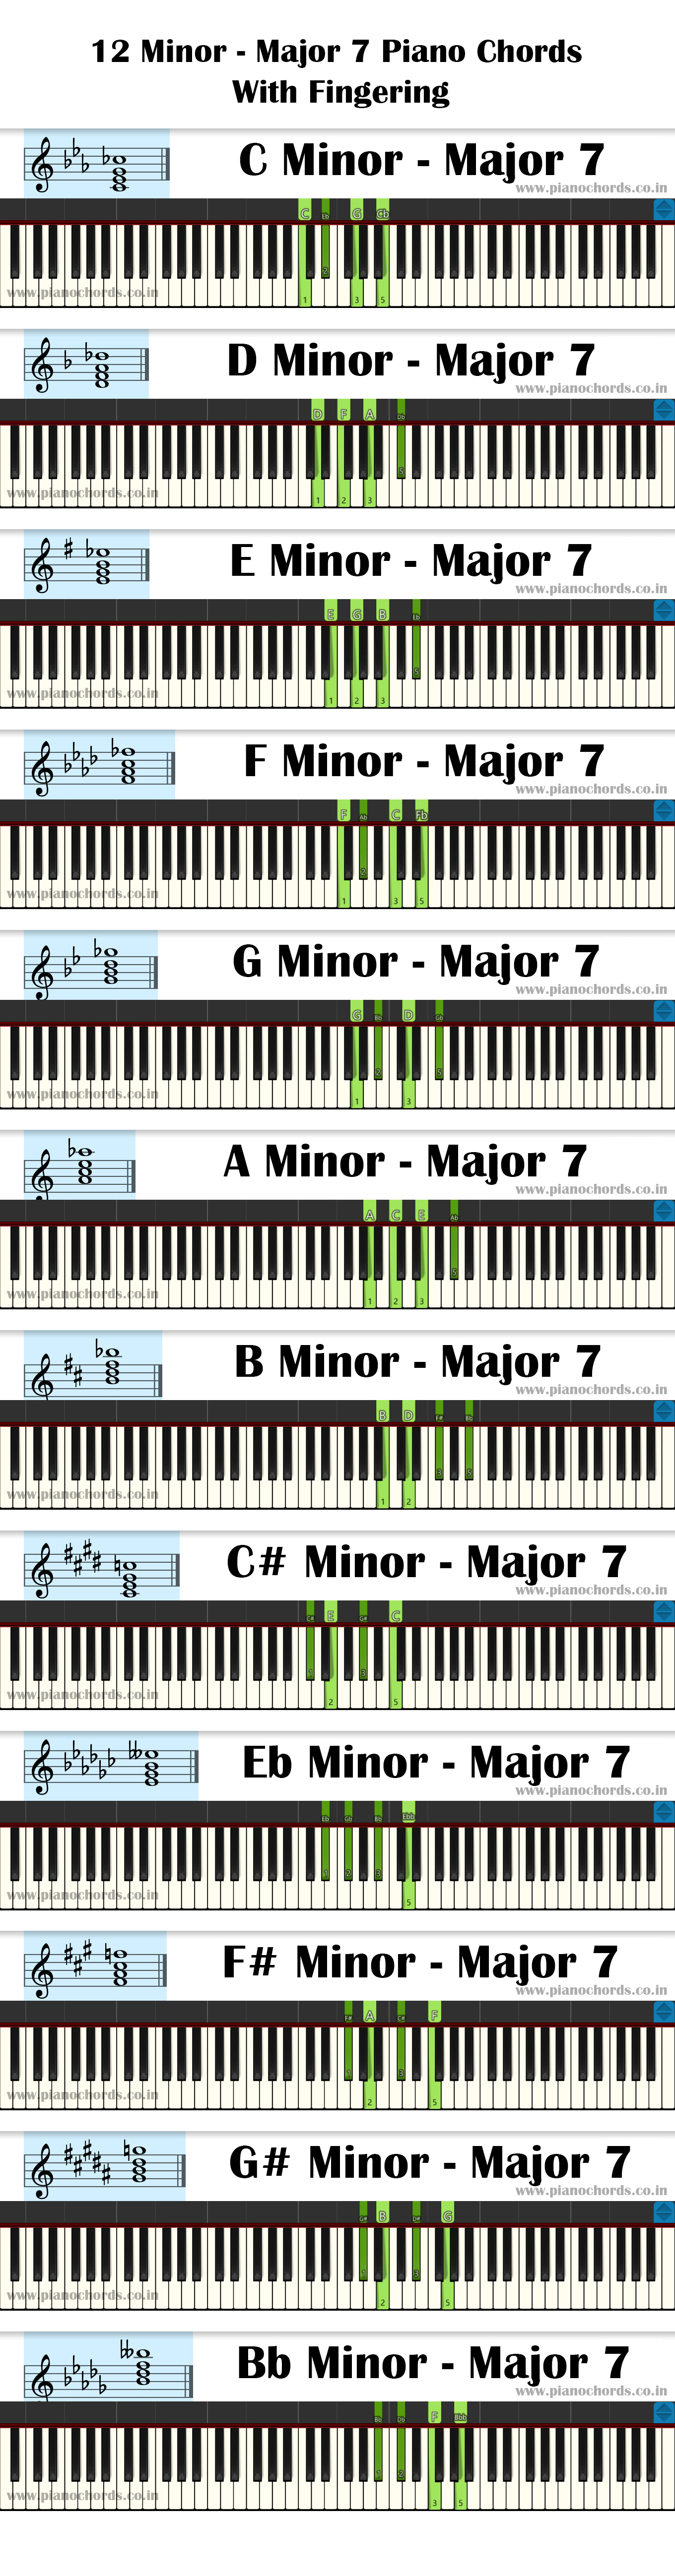 12 Minor - Major 7 Piano Chords With Fingering, Diagram, Staff Notation